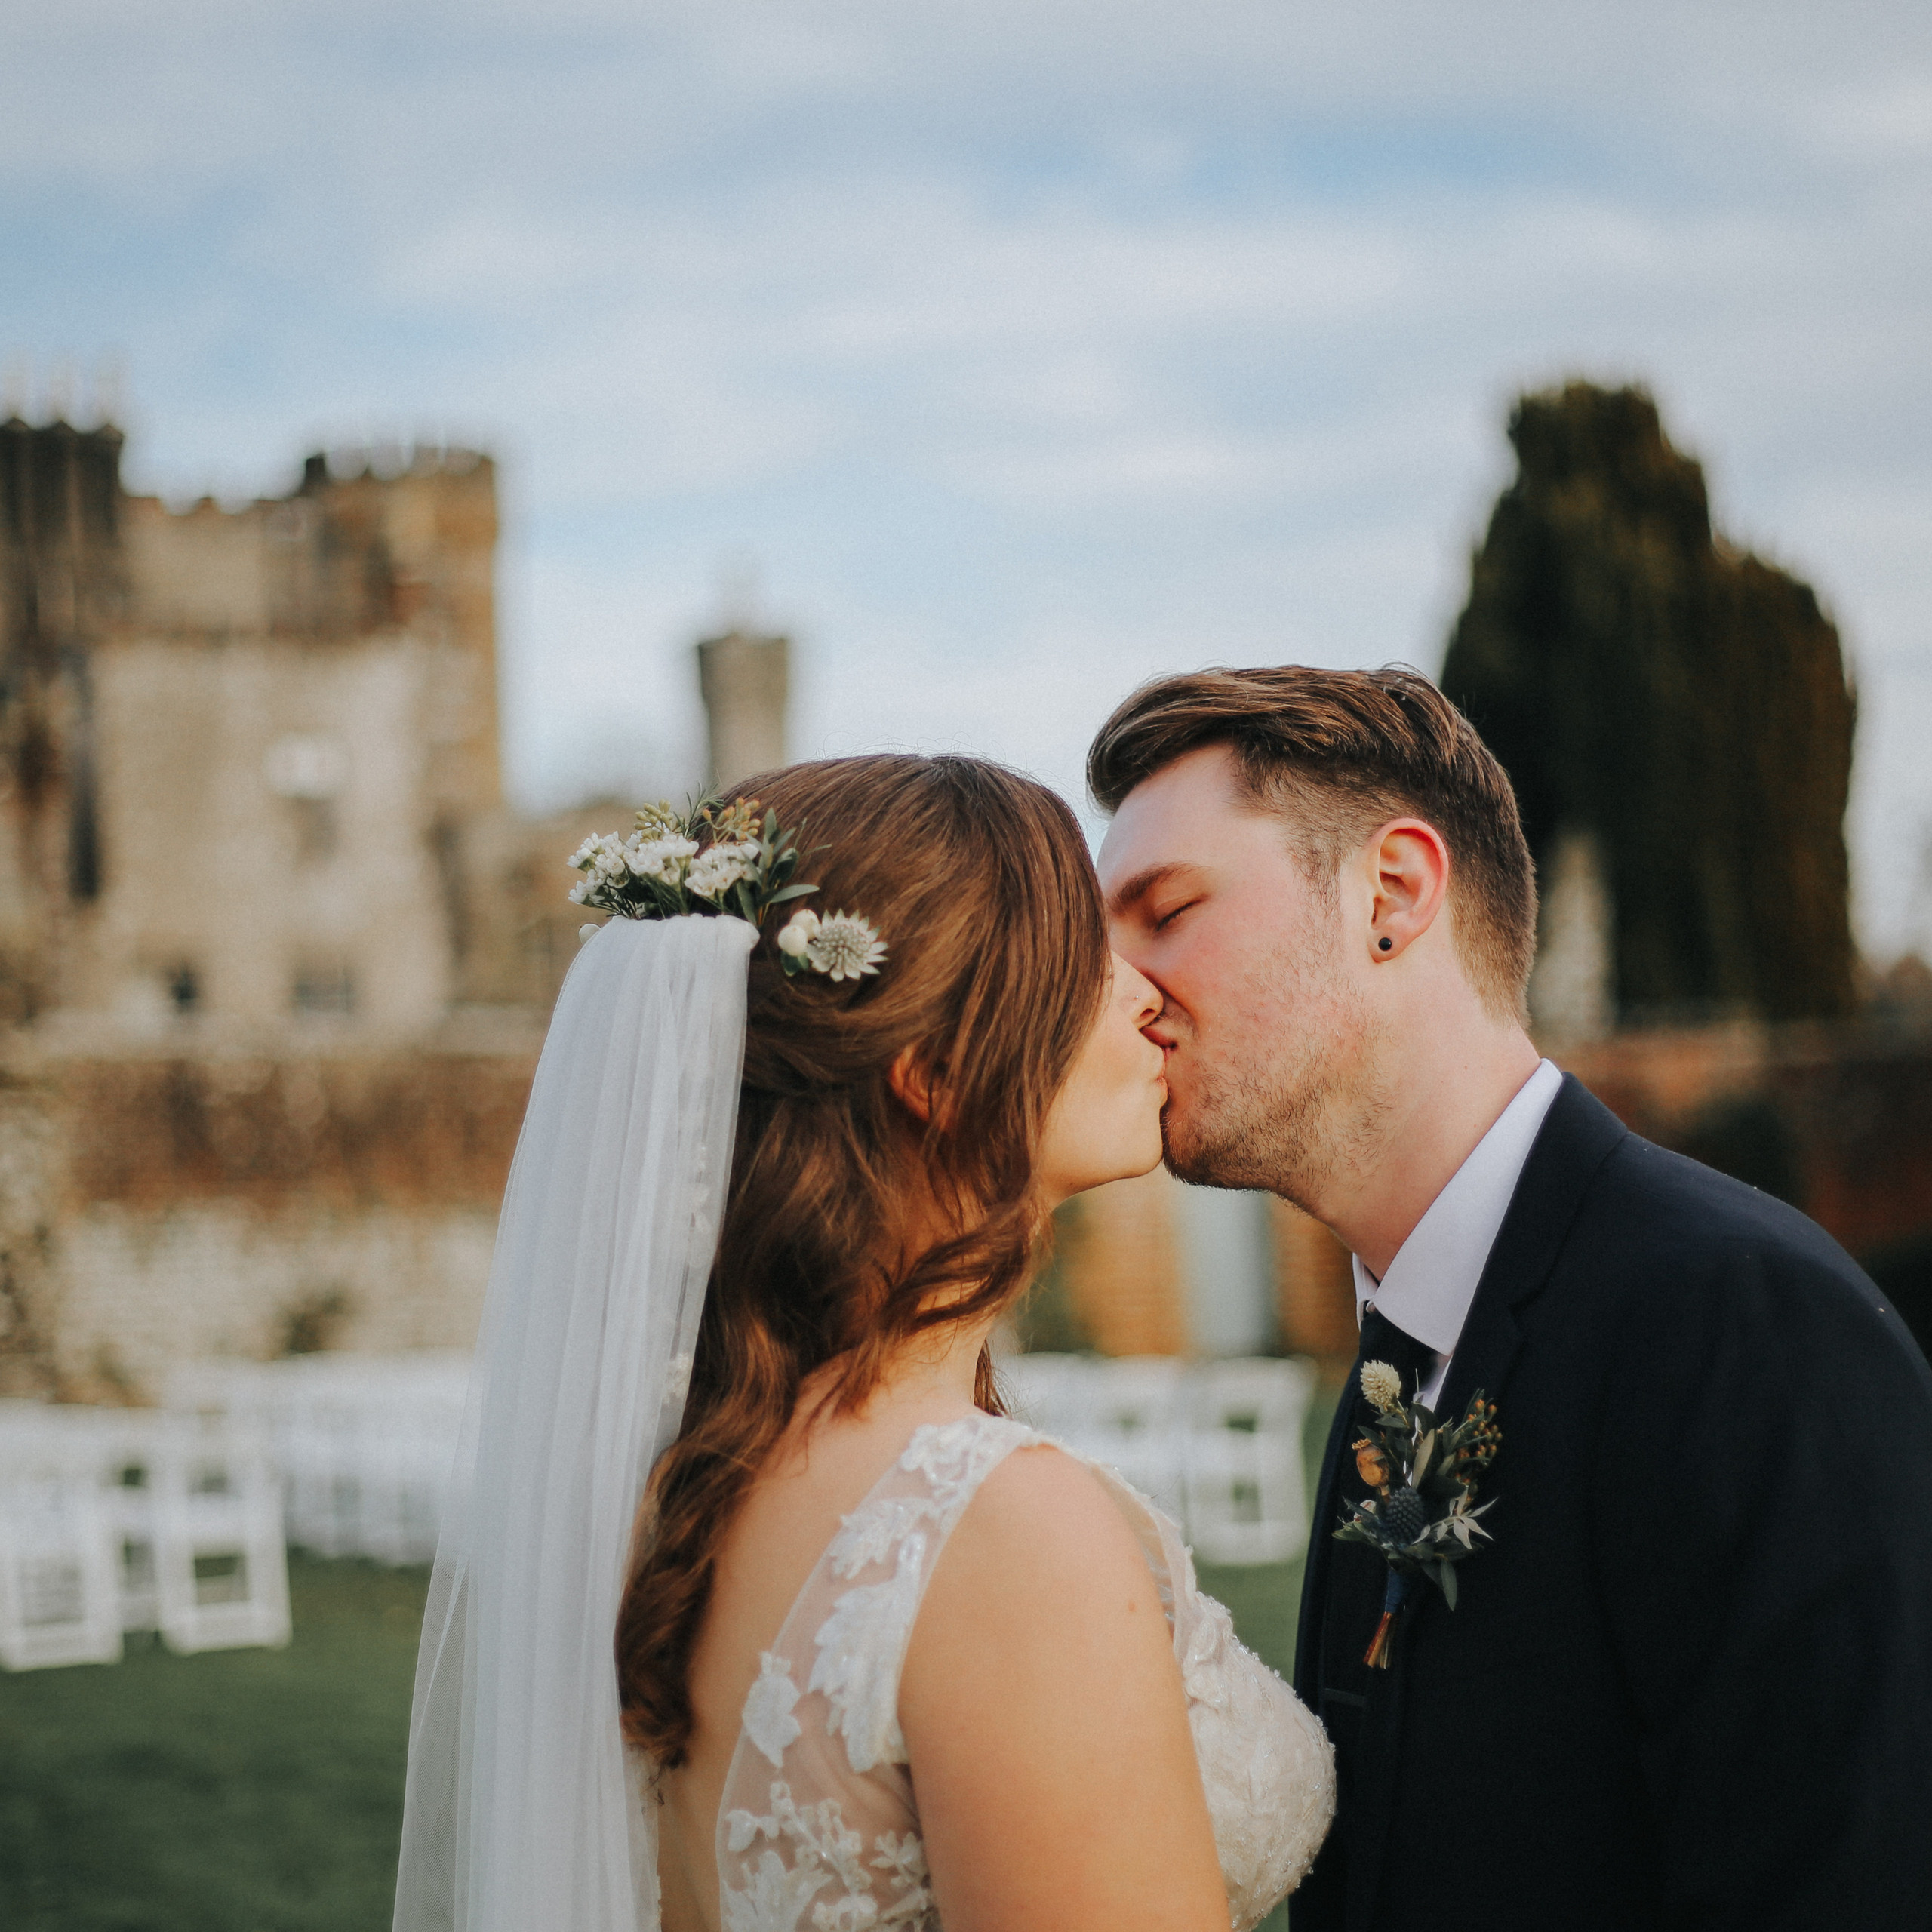 Bride and groom kiss at wedding at wadhurst castle